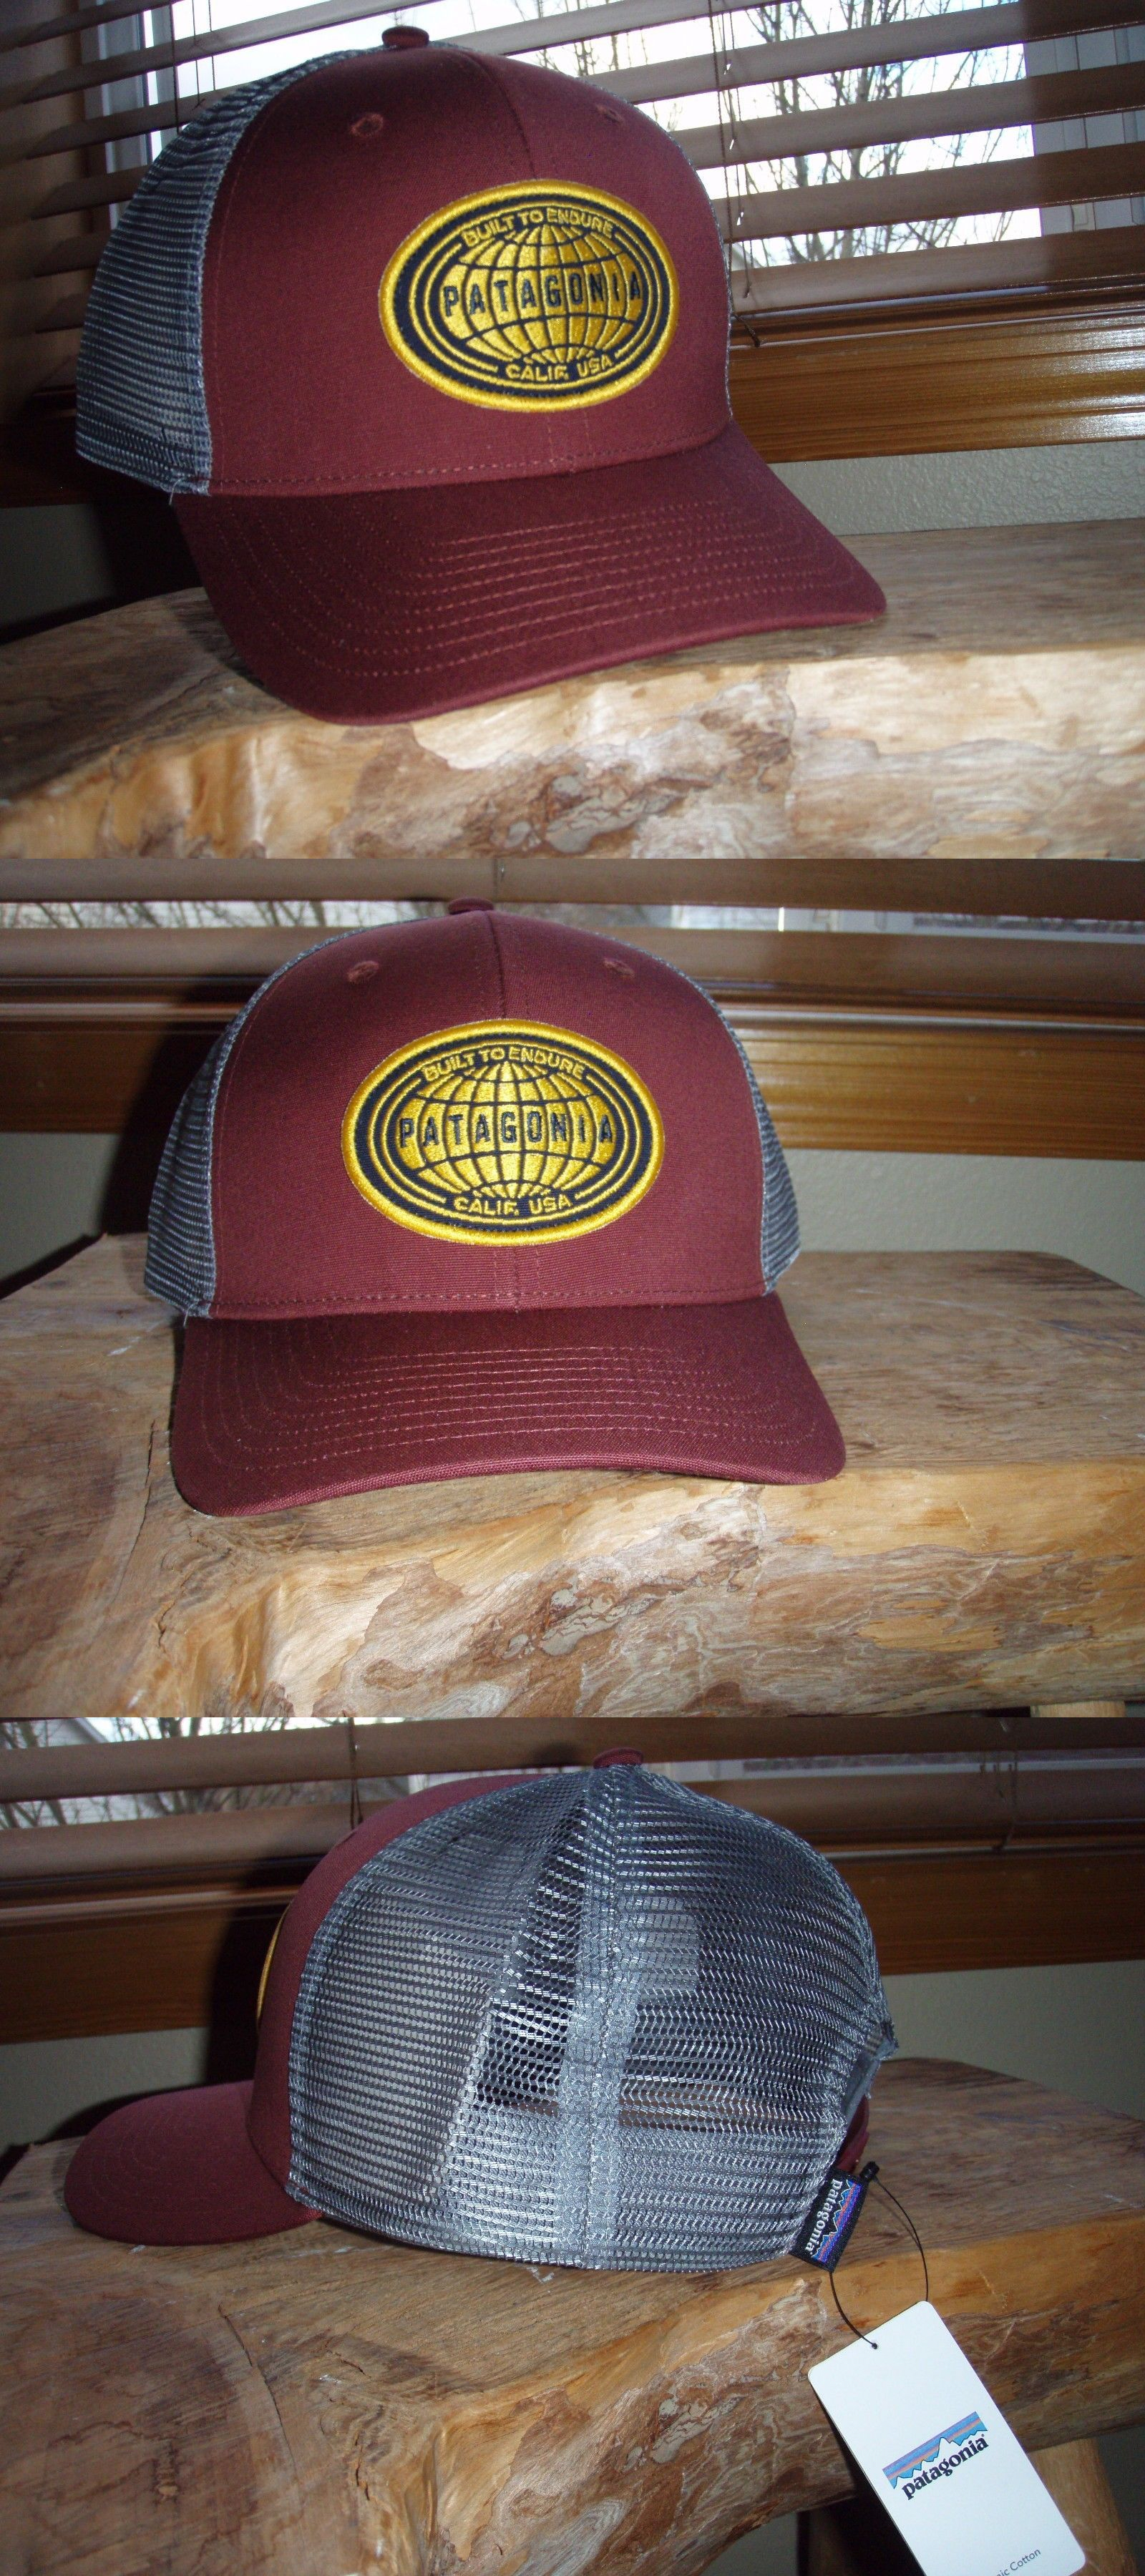 a69d20ec4be Hats and Headwear 70810  Patagonia Ratitude Rust Brown Trucker Hat BUY IT  NOW ONLY